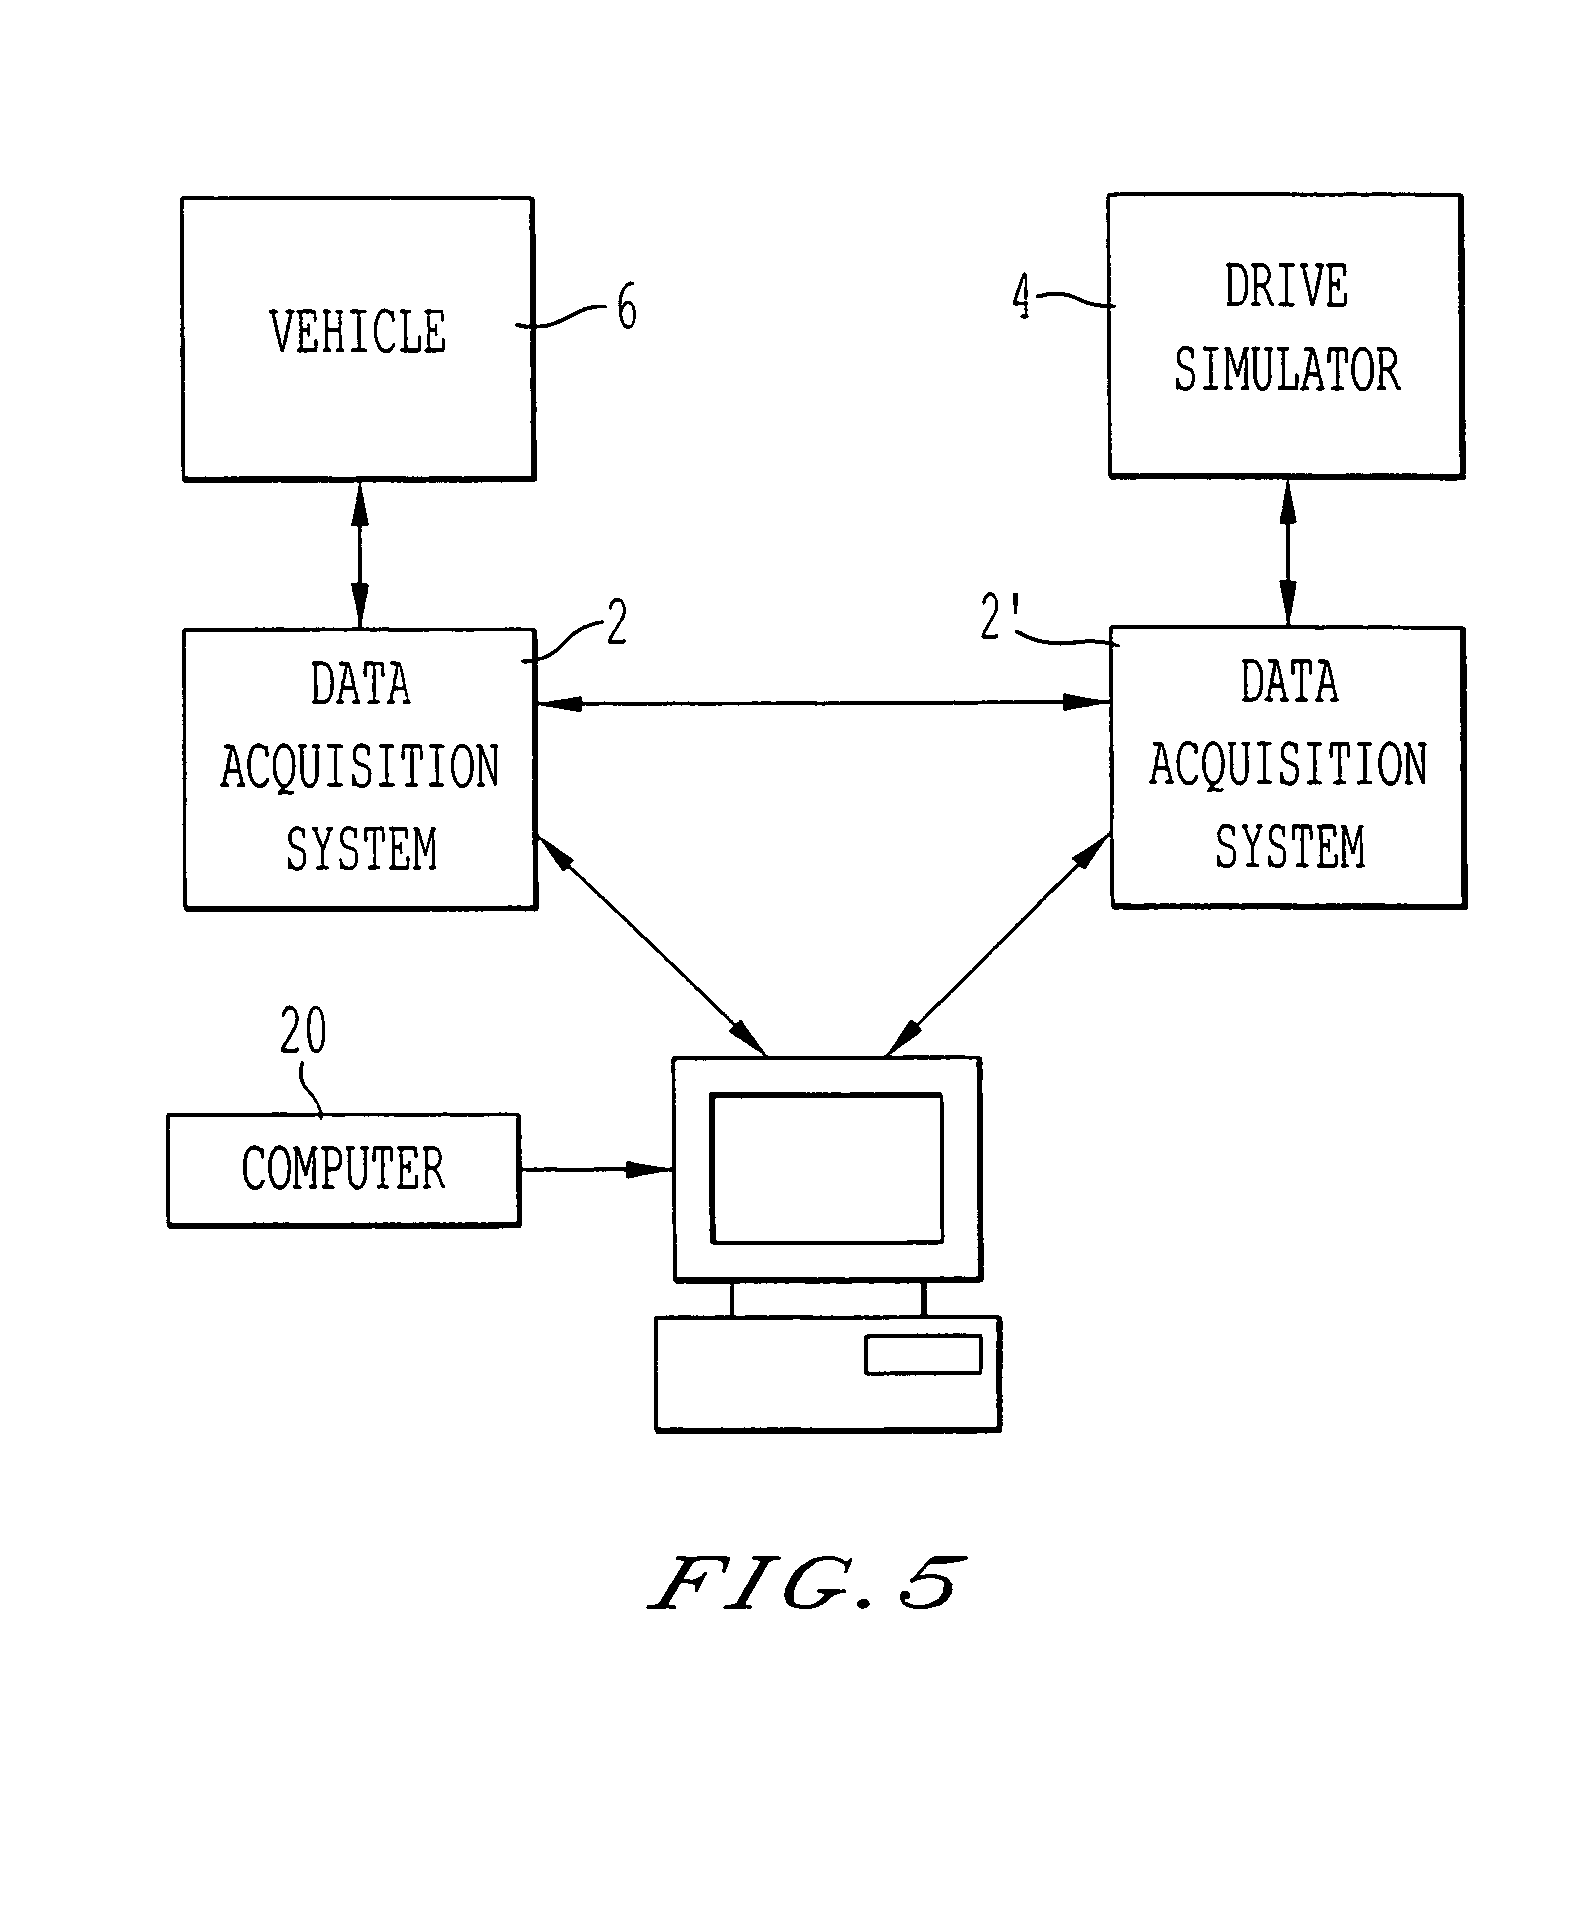 Civil Data Acquisition System : Patent us  system for combining driving